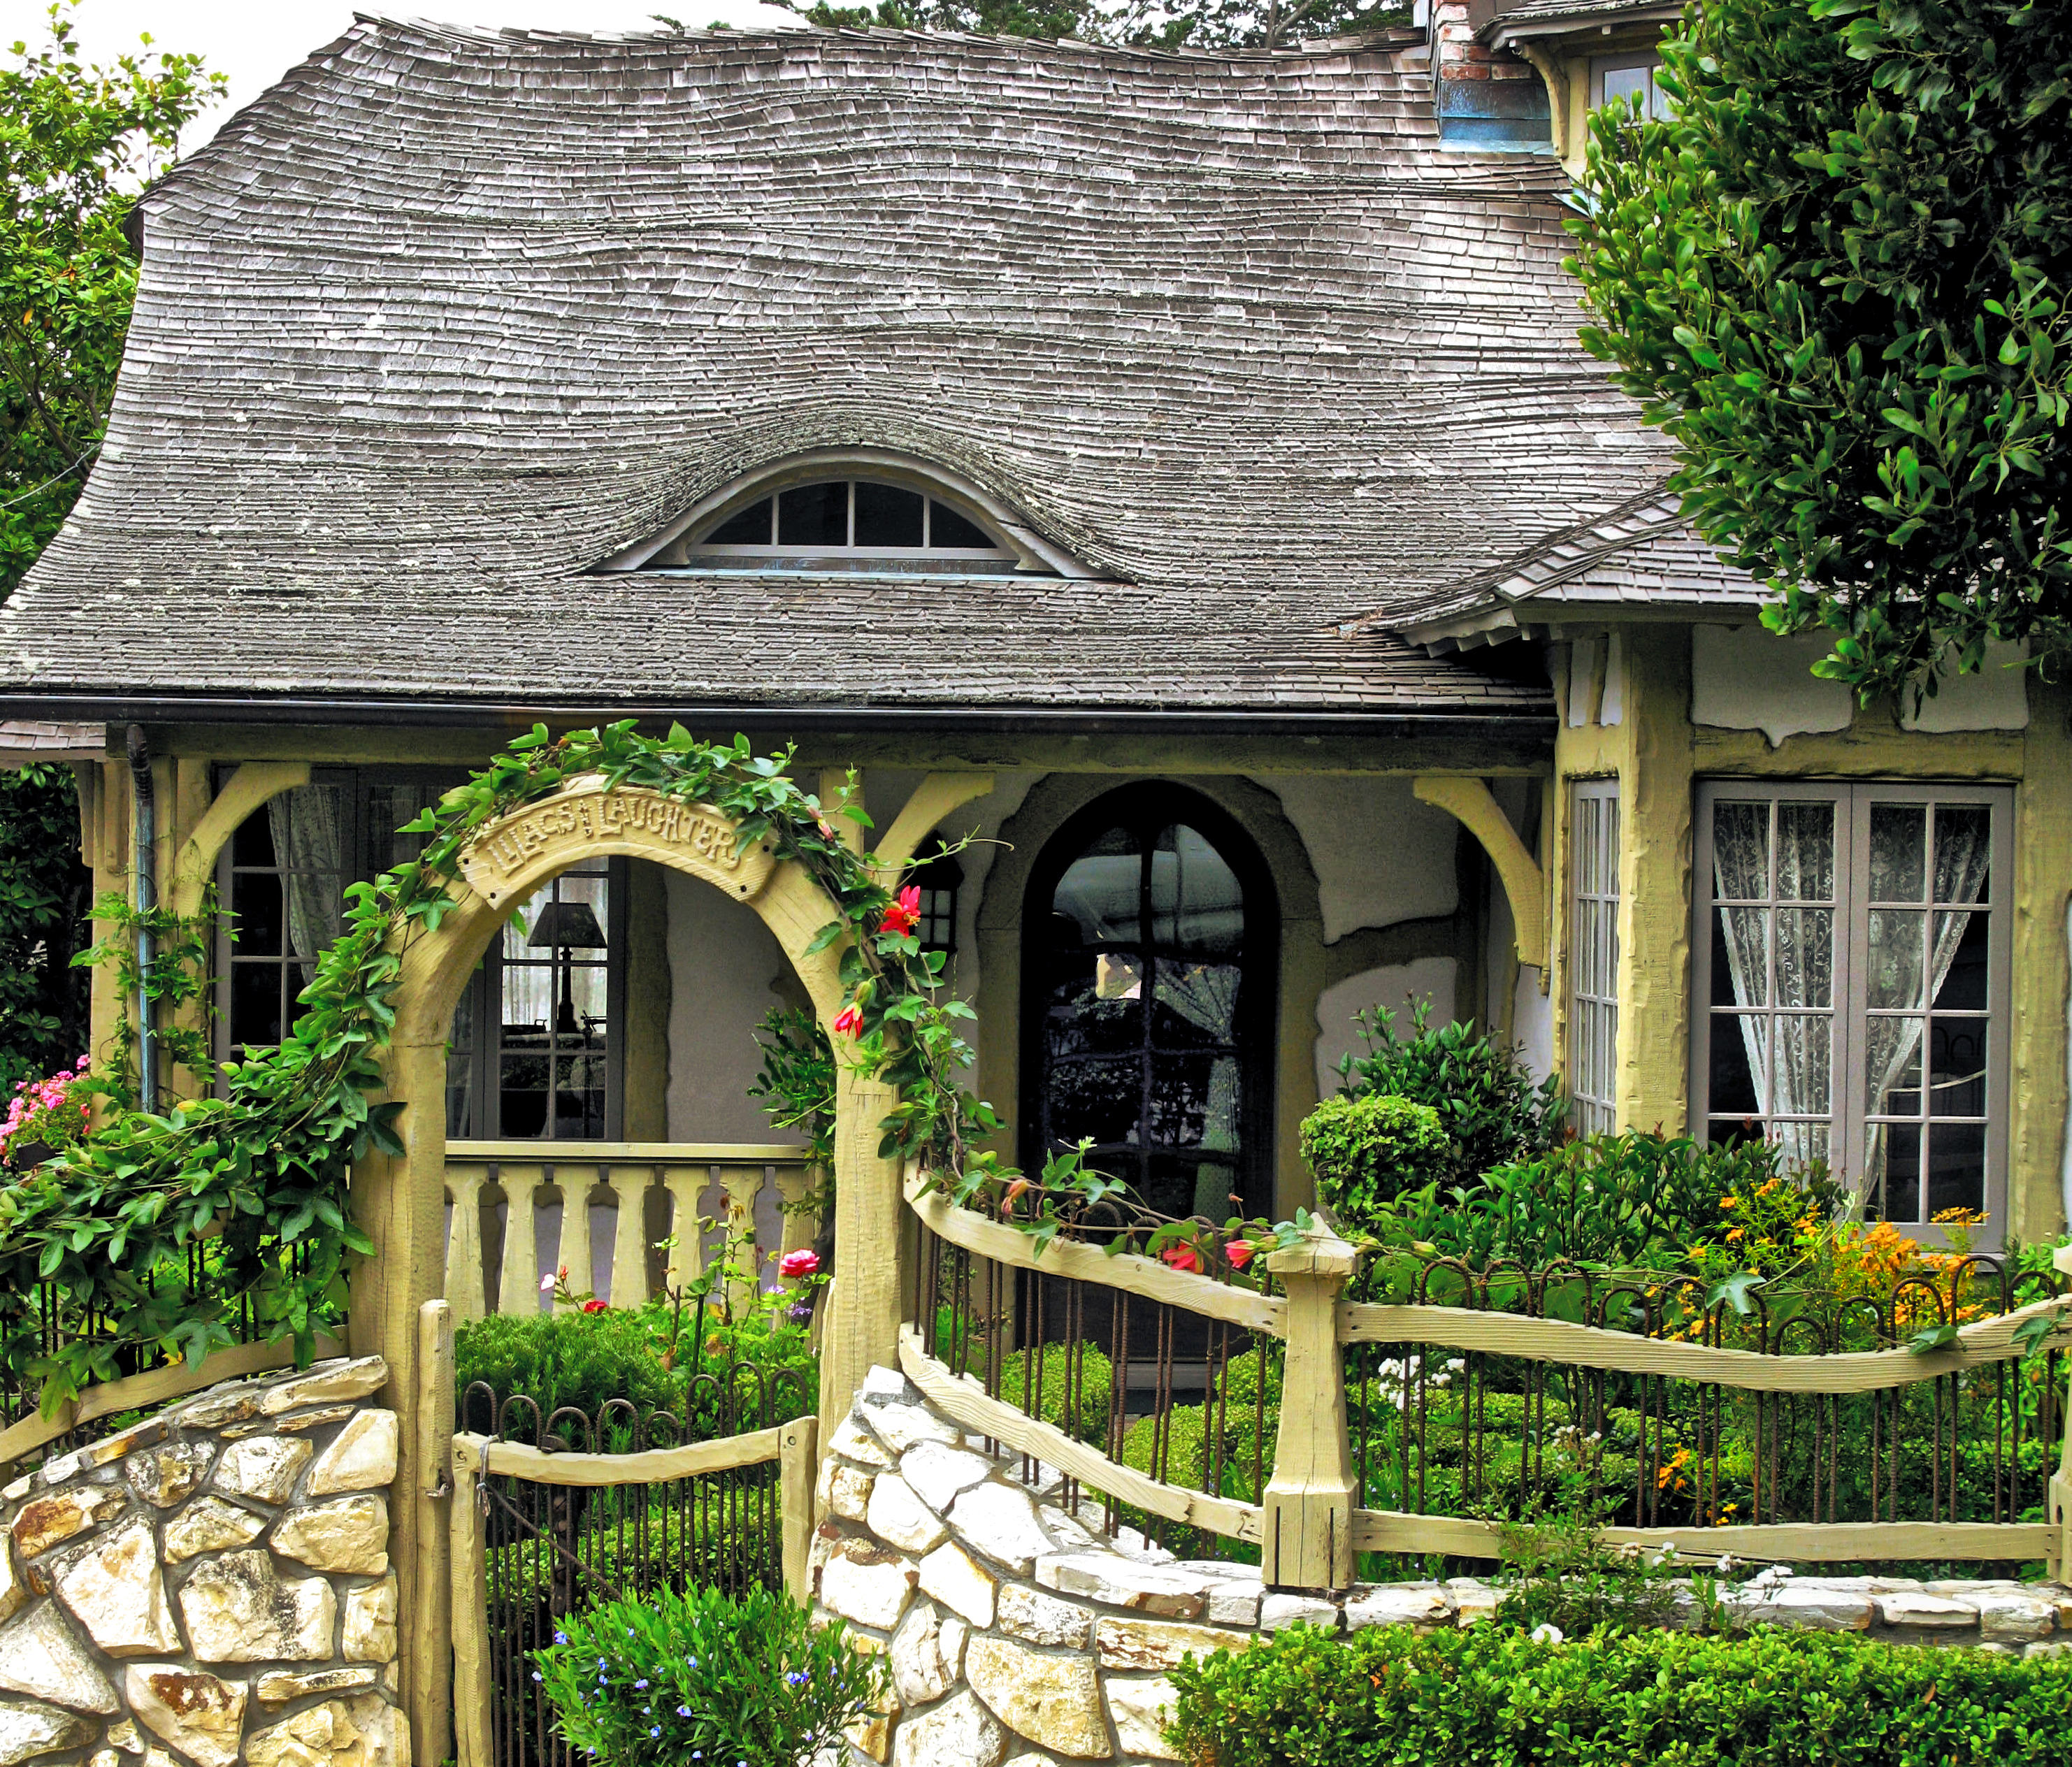 And That Fence With Its Stone Base Ironwork Wood Detail Is Really Icing On The Cake I See No Others Like It In Carmel